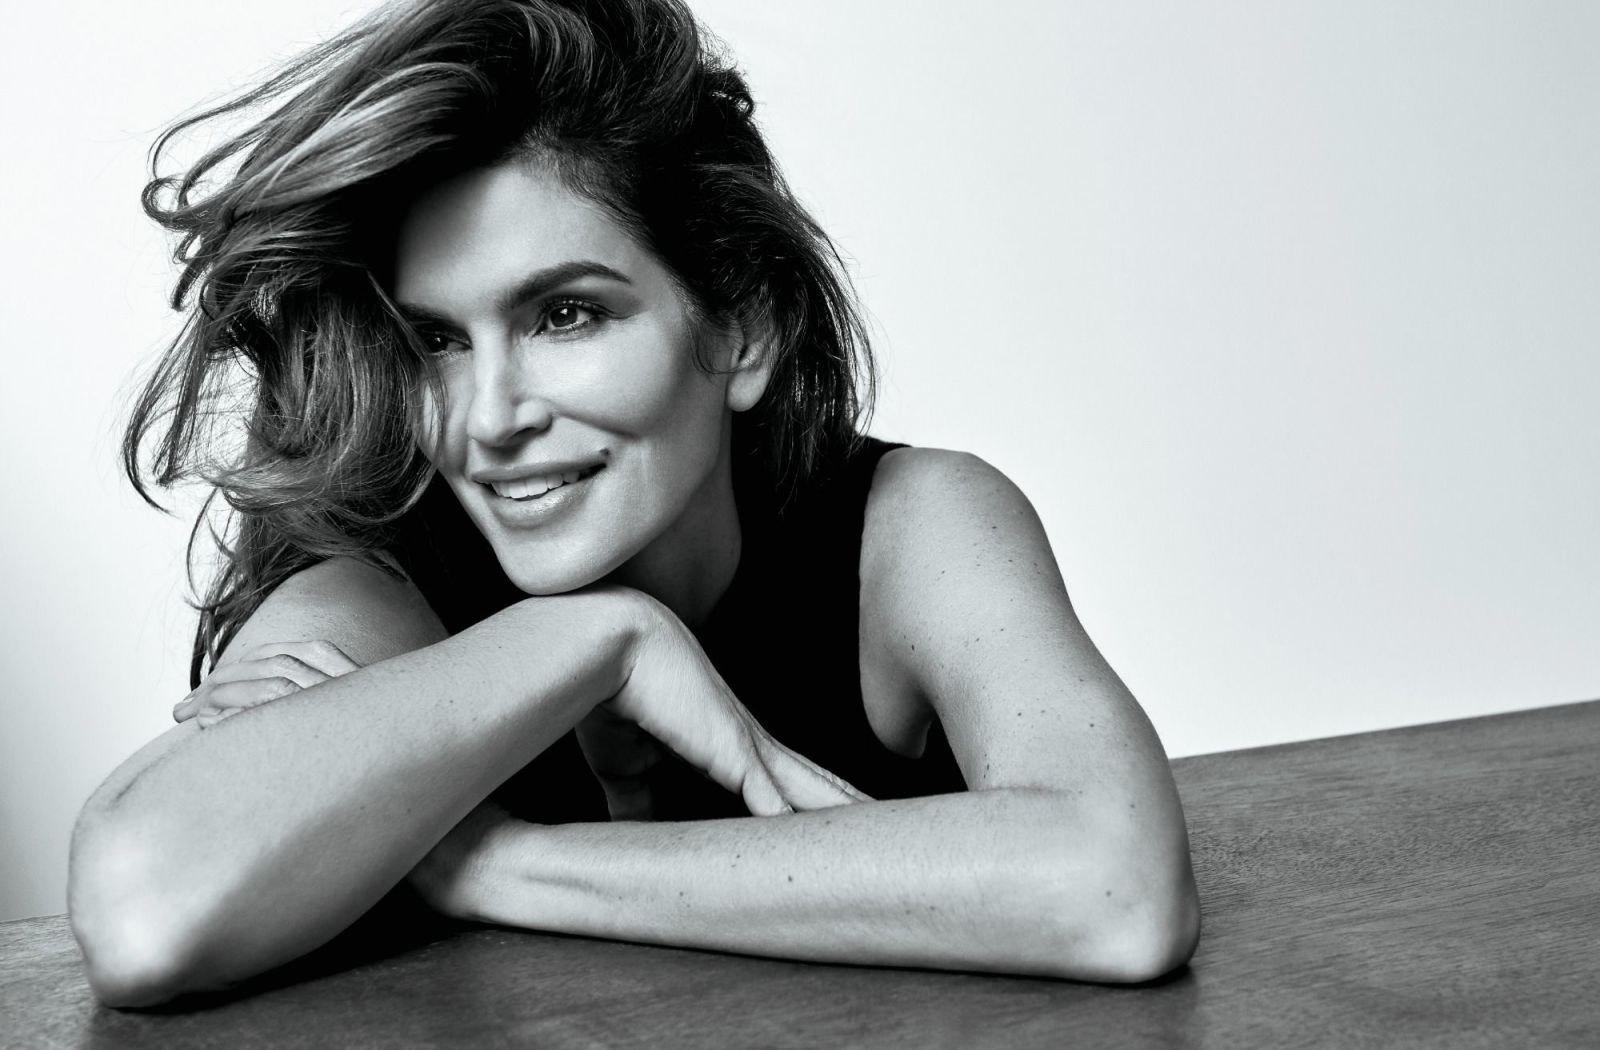 Cindy crawford facial